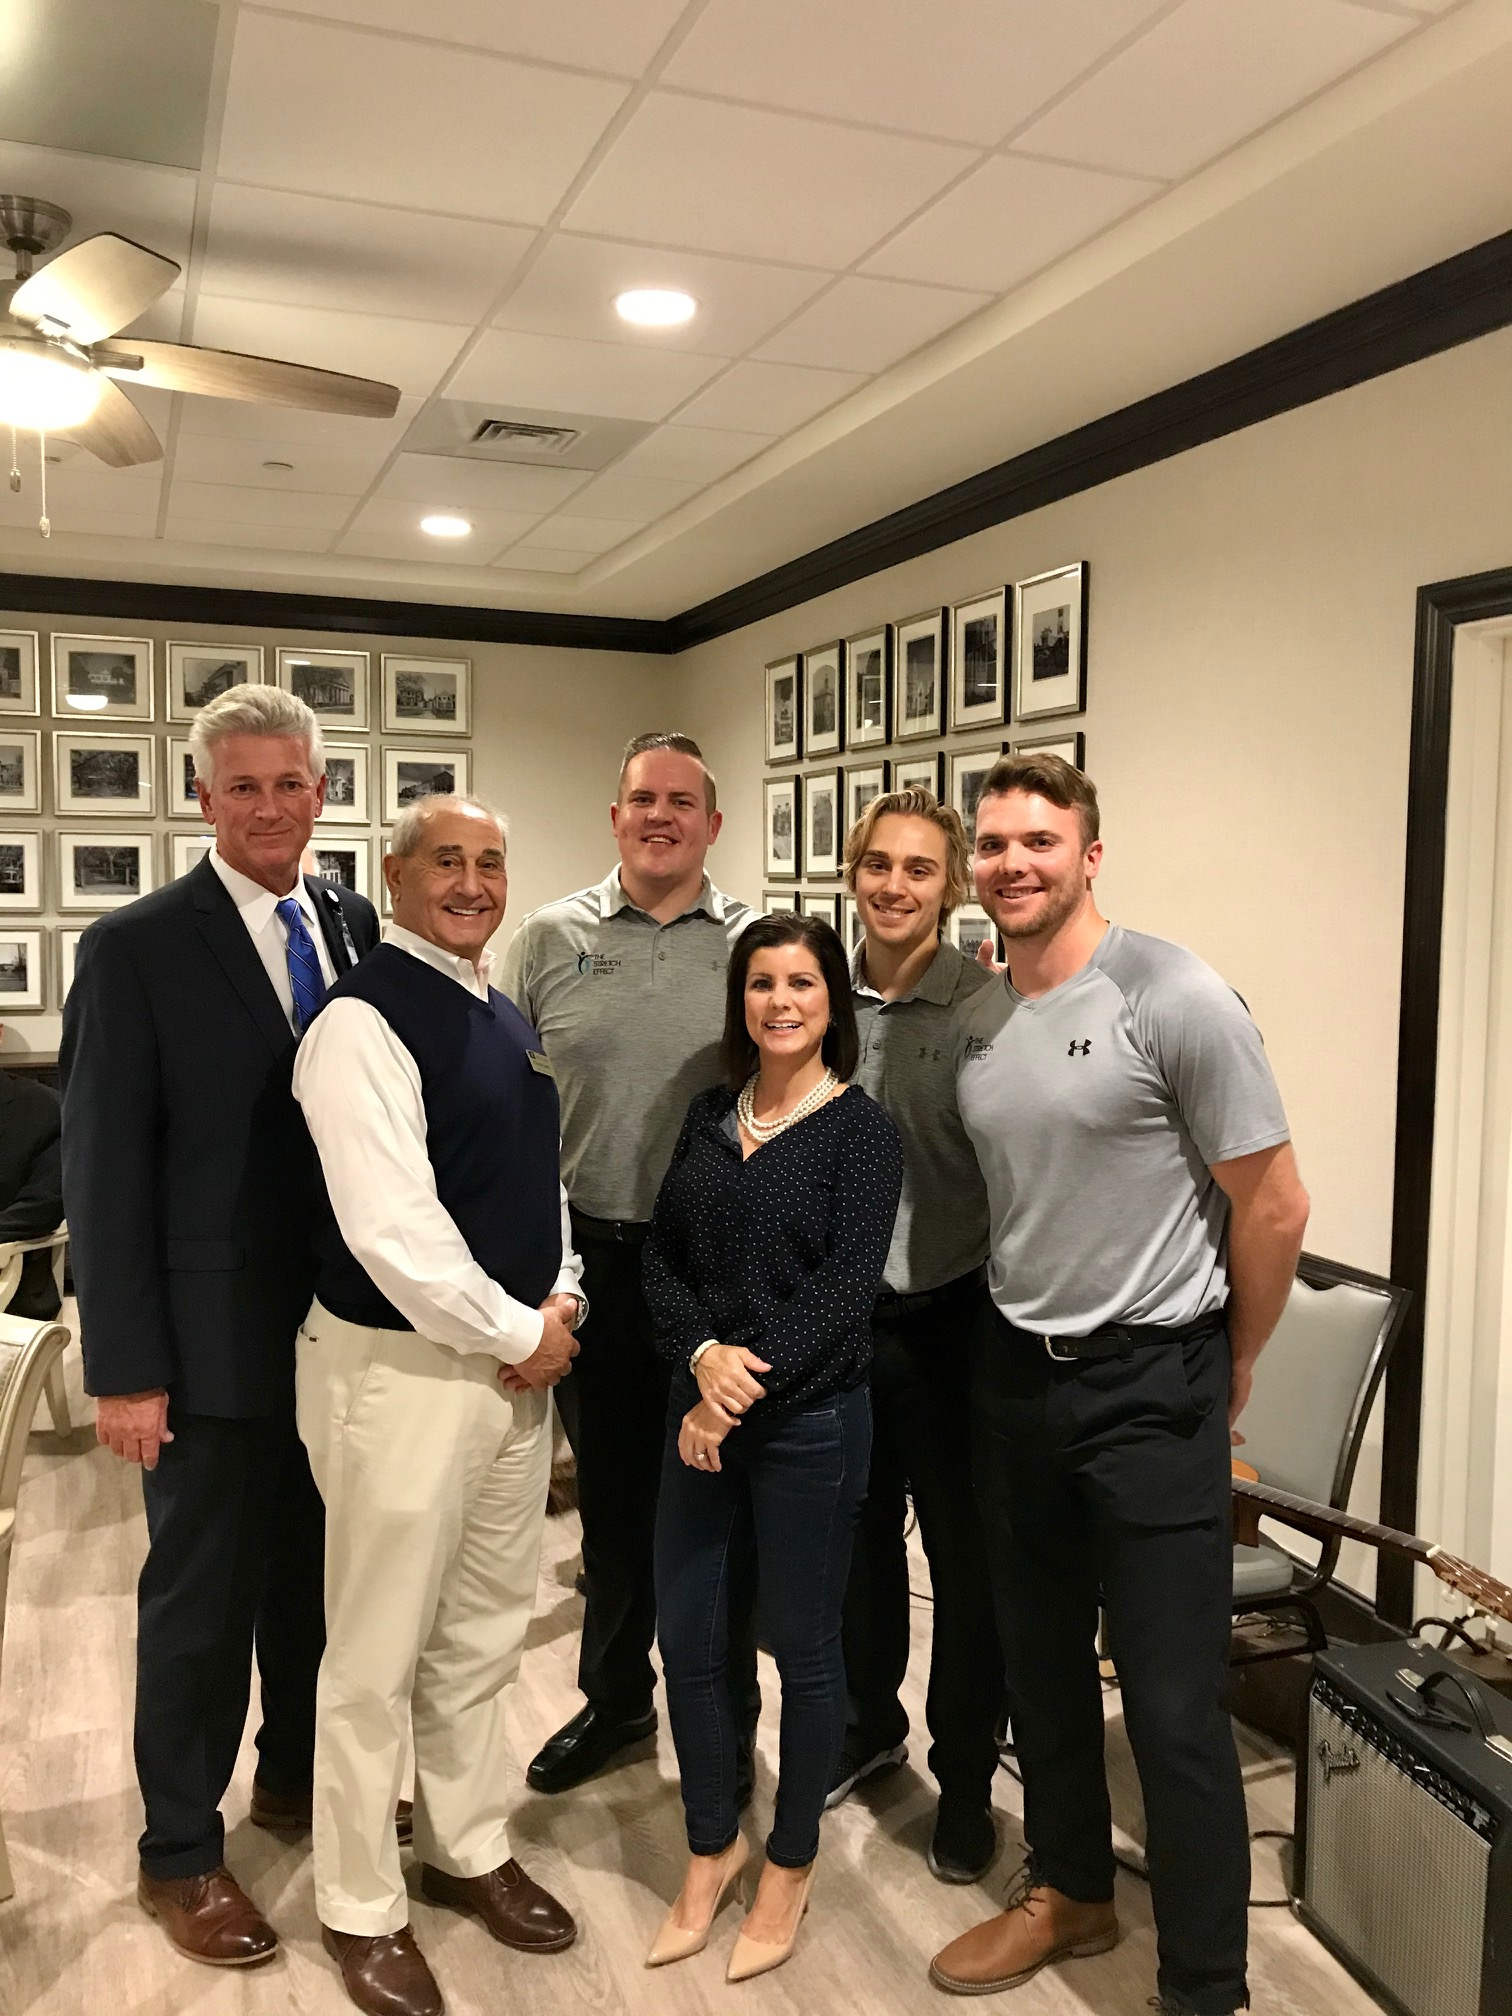 The Daniel Island Business Association held its monthly block party at Wellmore of Daniel Island last week. Pictured, from left, is Executive Director of Wellmore Jeff Barber, DIBA president Chuck Latiff, Matt Tripp with The Stretch Effect, Rachel Urso with Coastal Luxury Homes, Nick Bosley and Jamie Brown, both with The Stretch Effect.